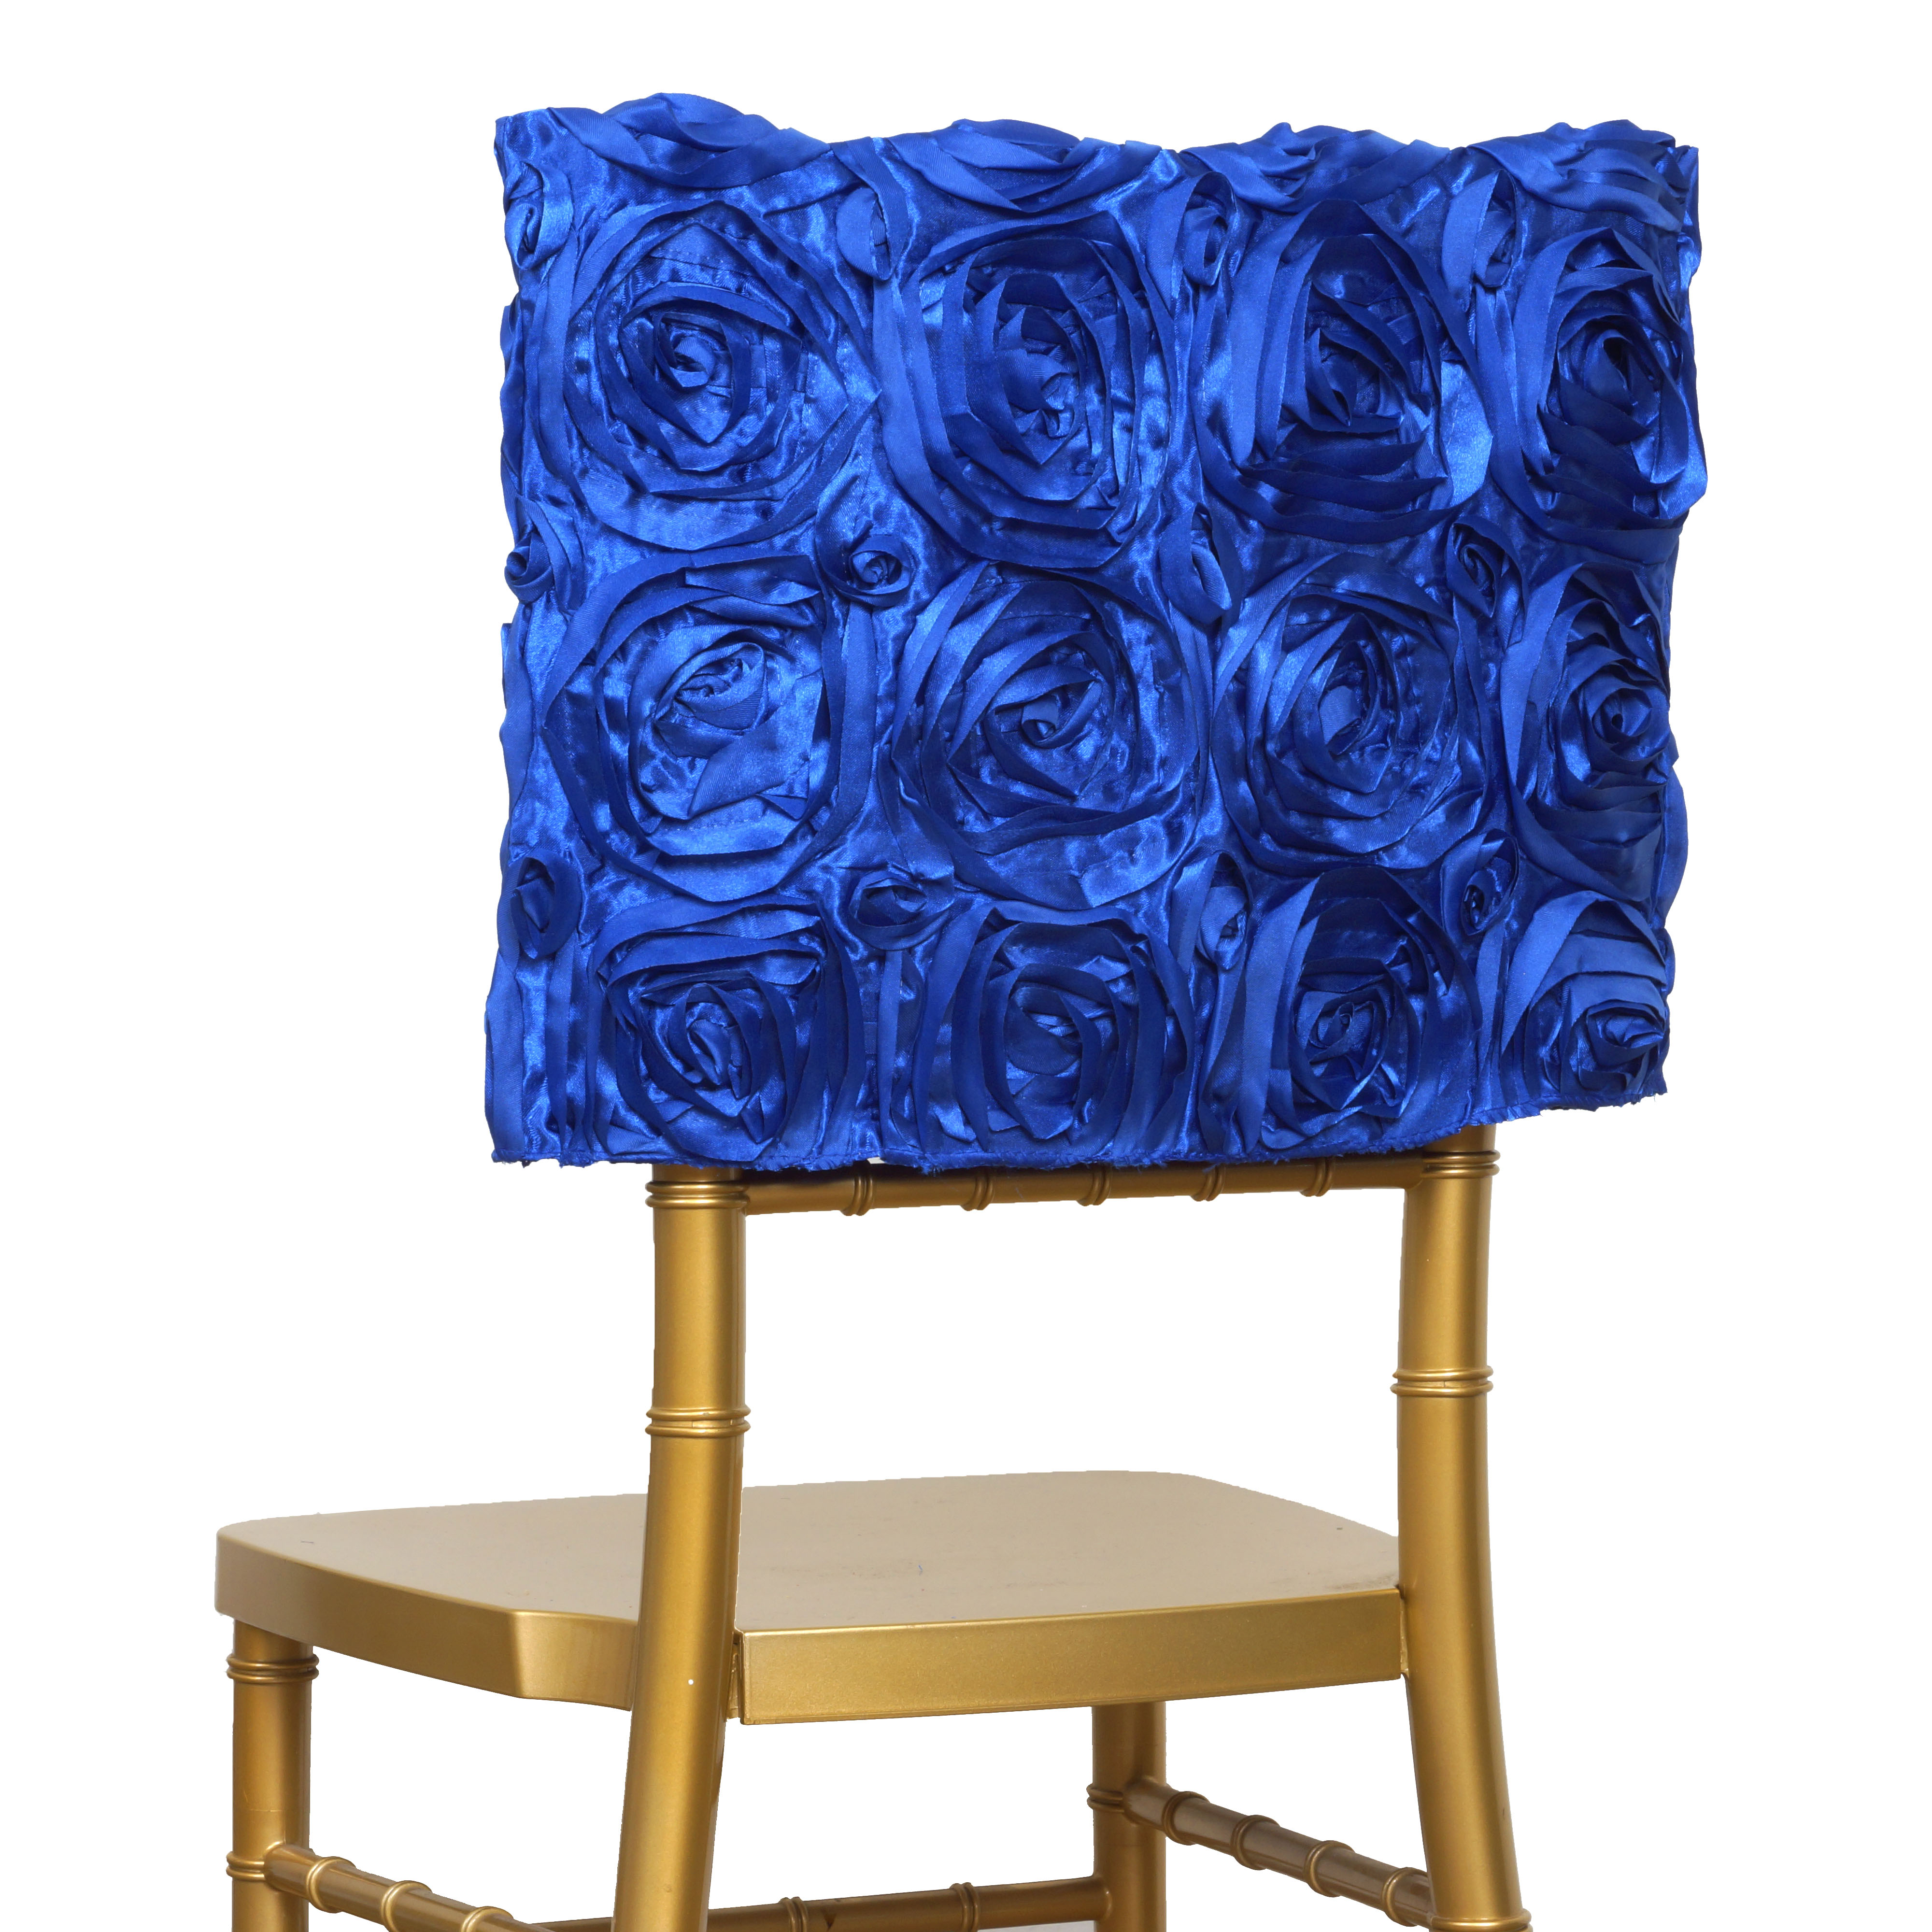 6 pcs CHAIR COVERS SQUARE TOP CAPS with RIBBON ROSES Party Wedding